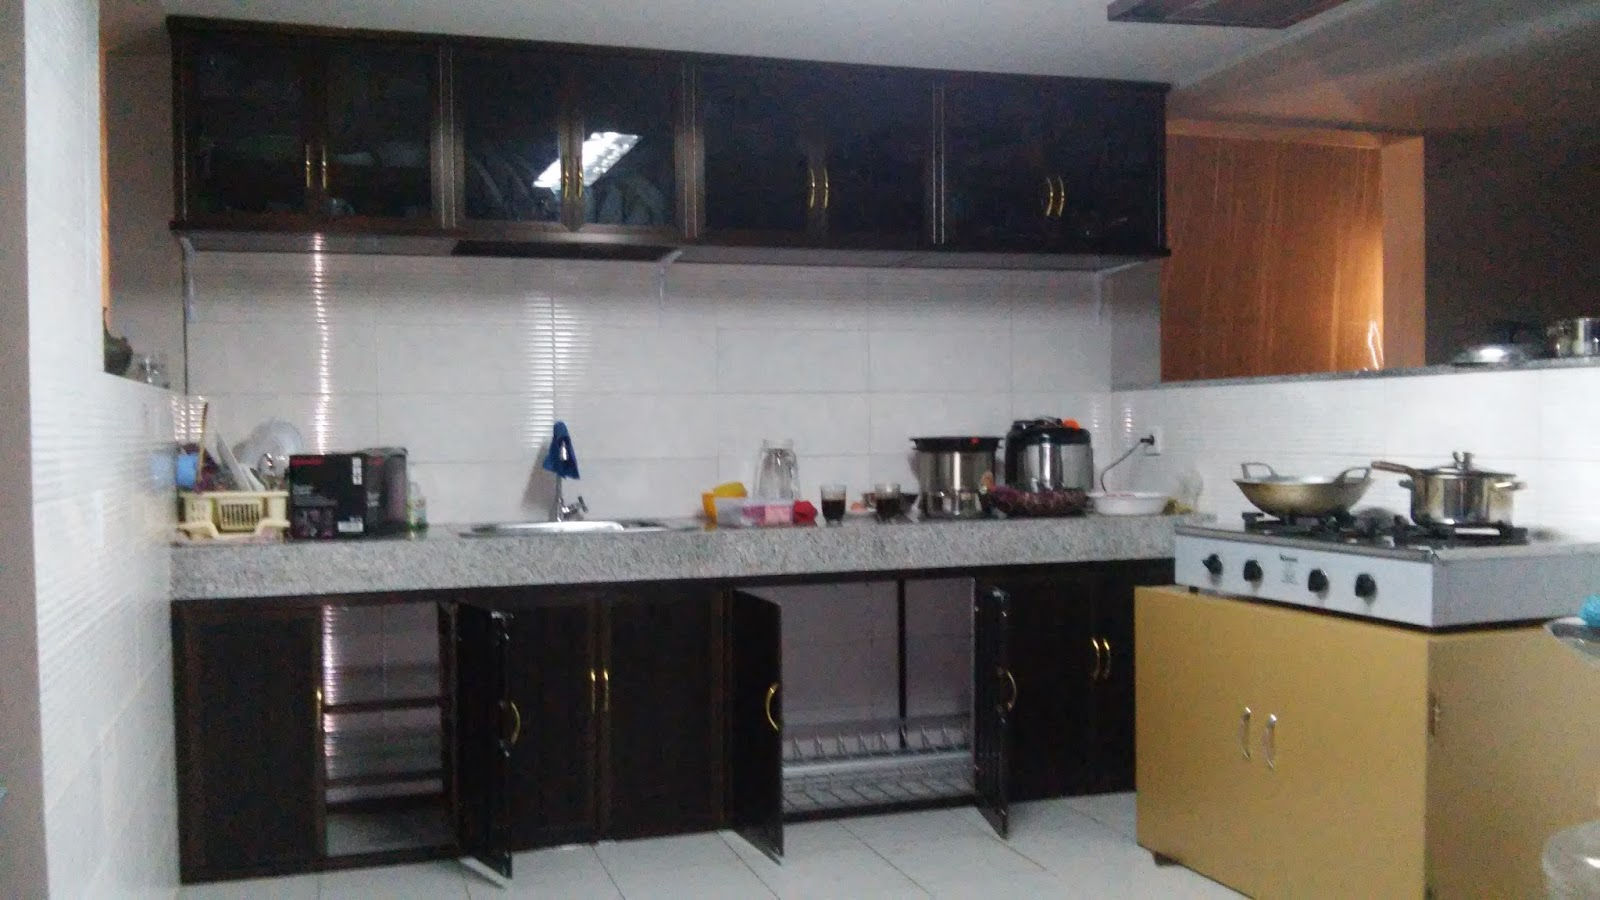 Kitchen set aluminium surabaya pos tentang kitchen set aluminium surabaya yang ditulis oleh kitchensetsurabayamalang we would like to show you a